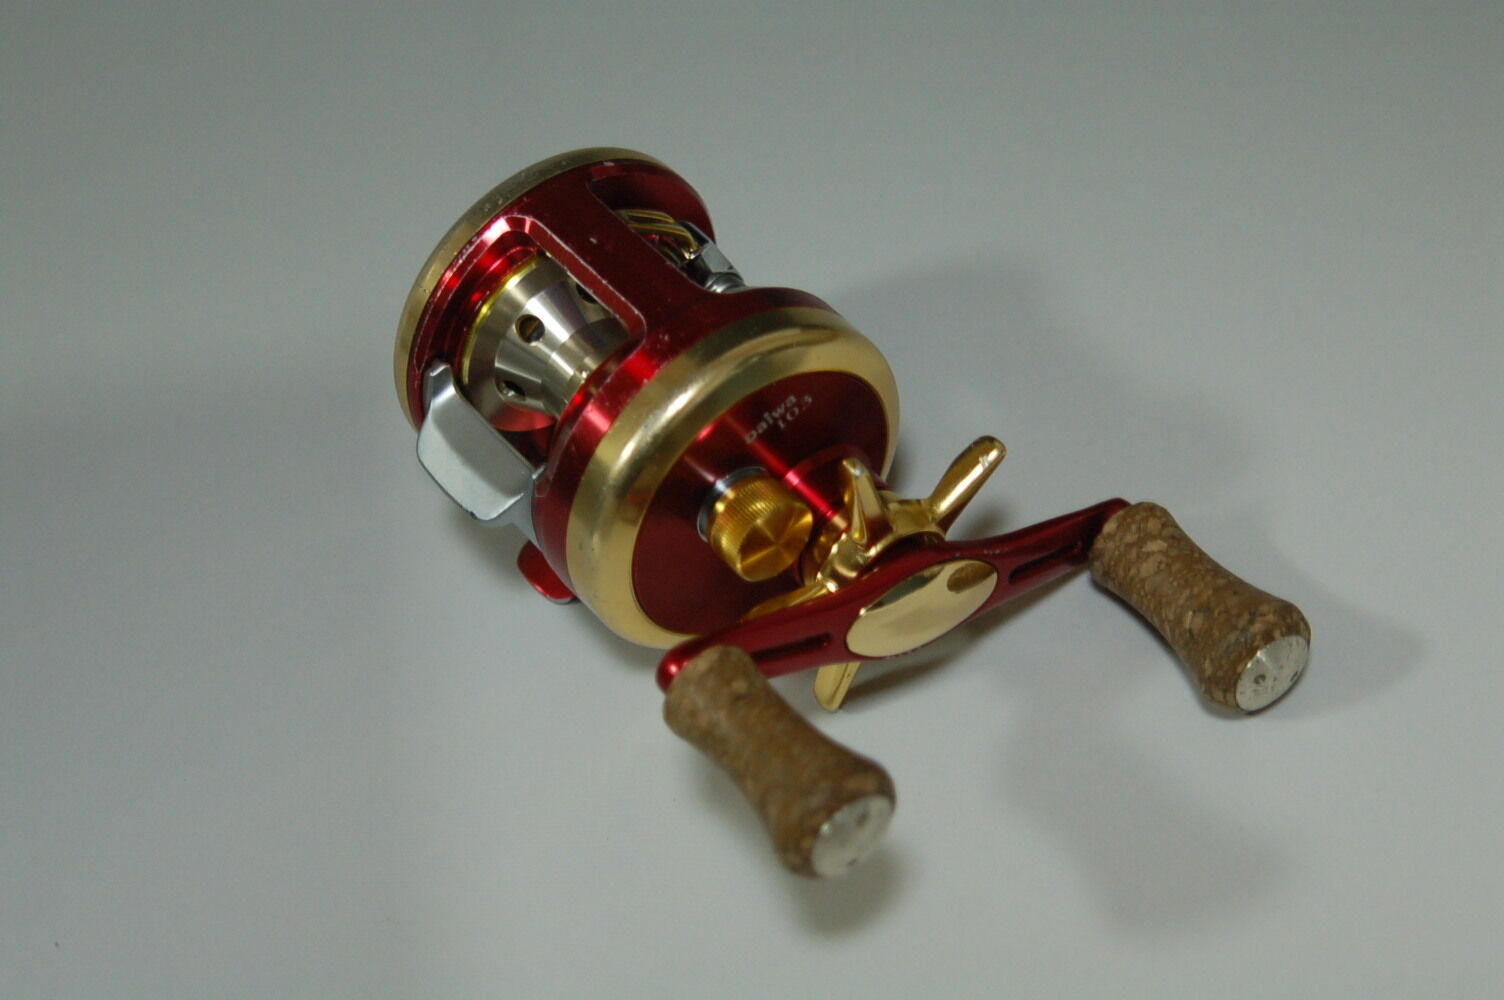 Daiwa Millionaire CV-Z103 Club M Red Gold Version